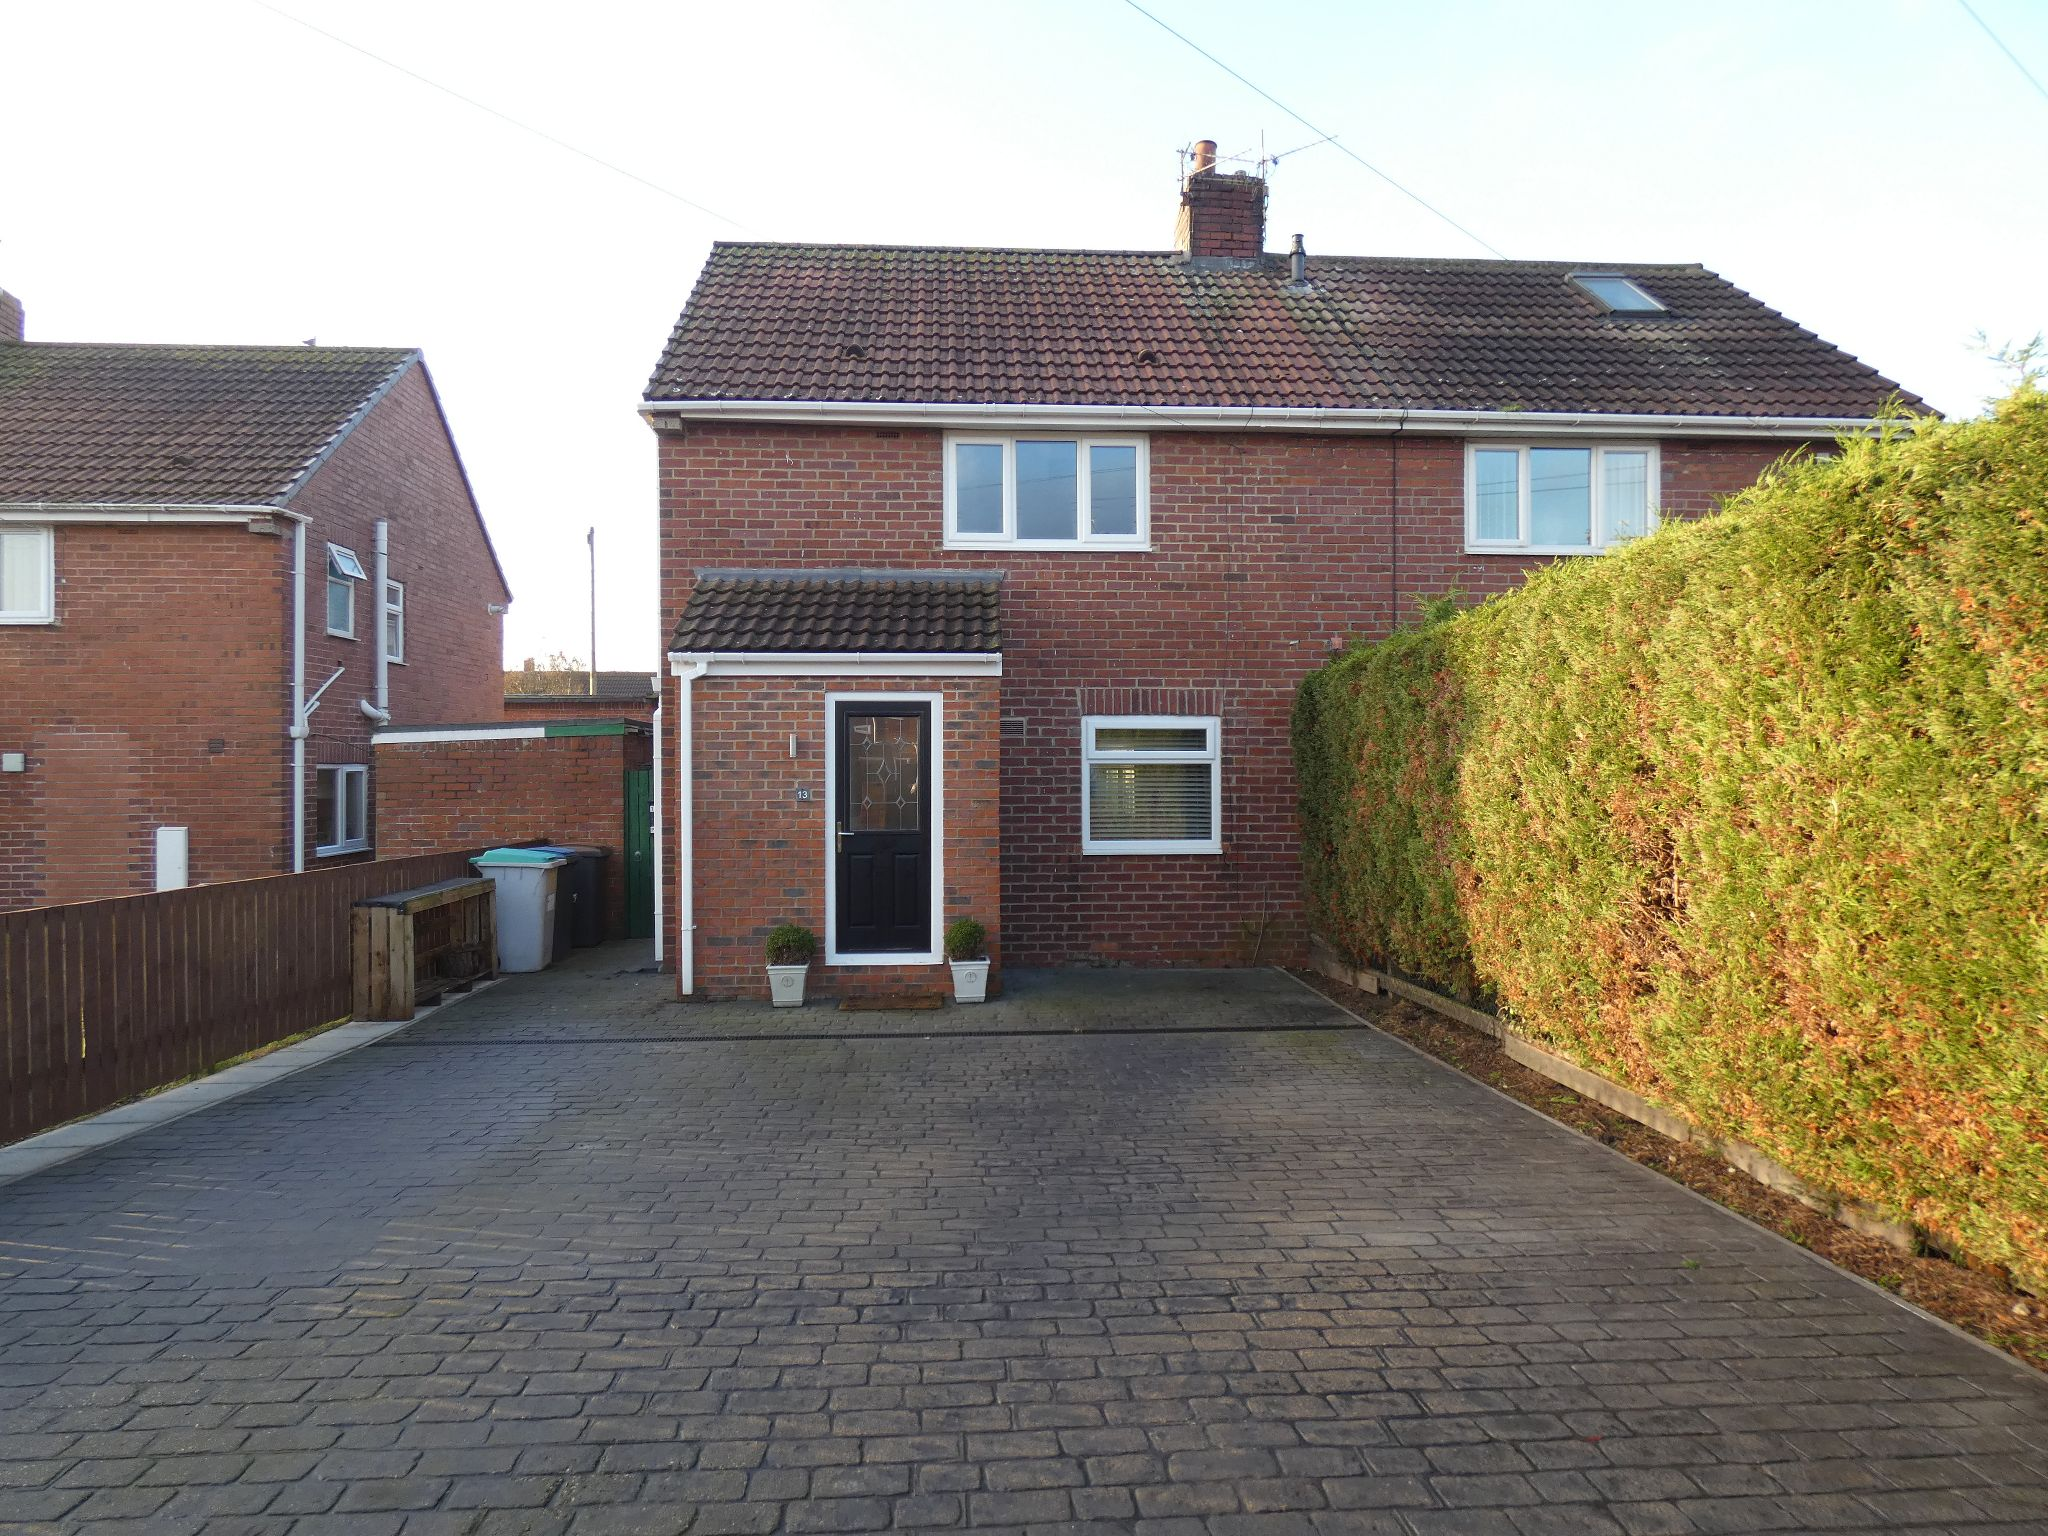 2 bedroom semi-detached house For Sale in Esh Winning - Front Elevation.